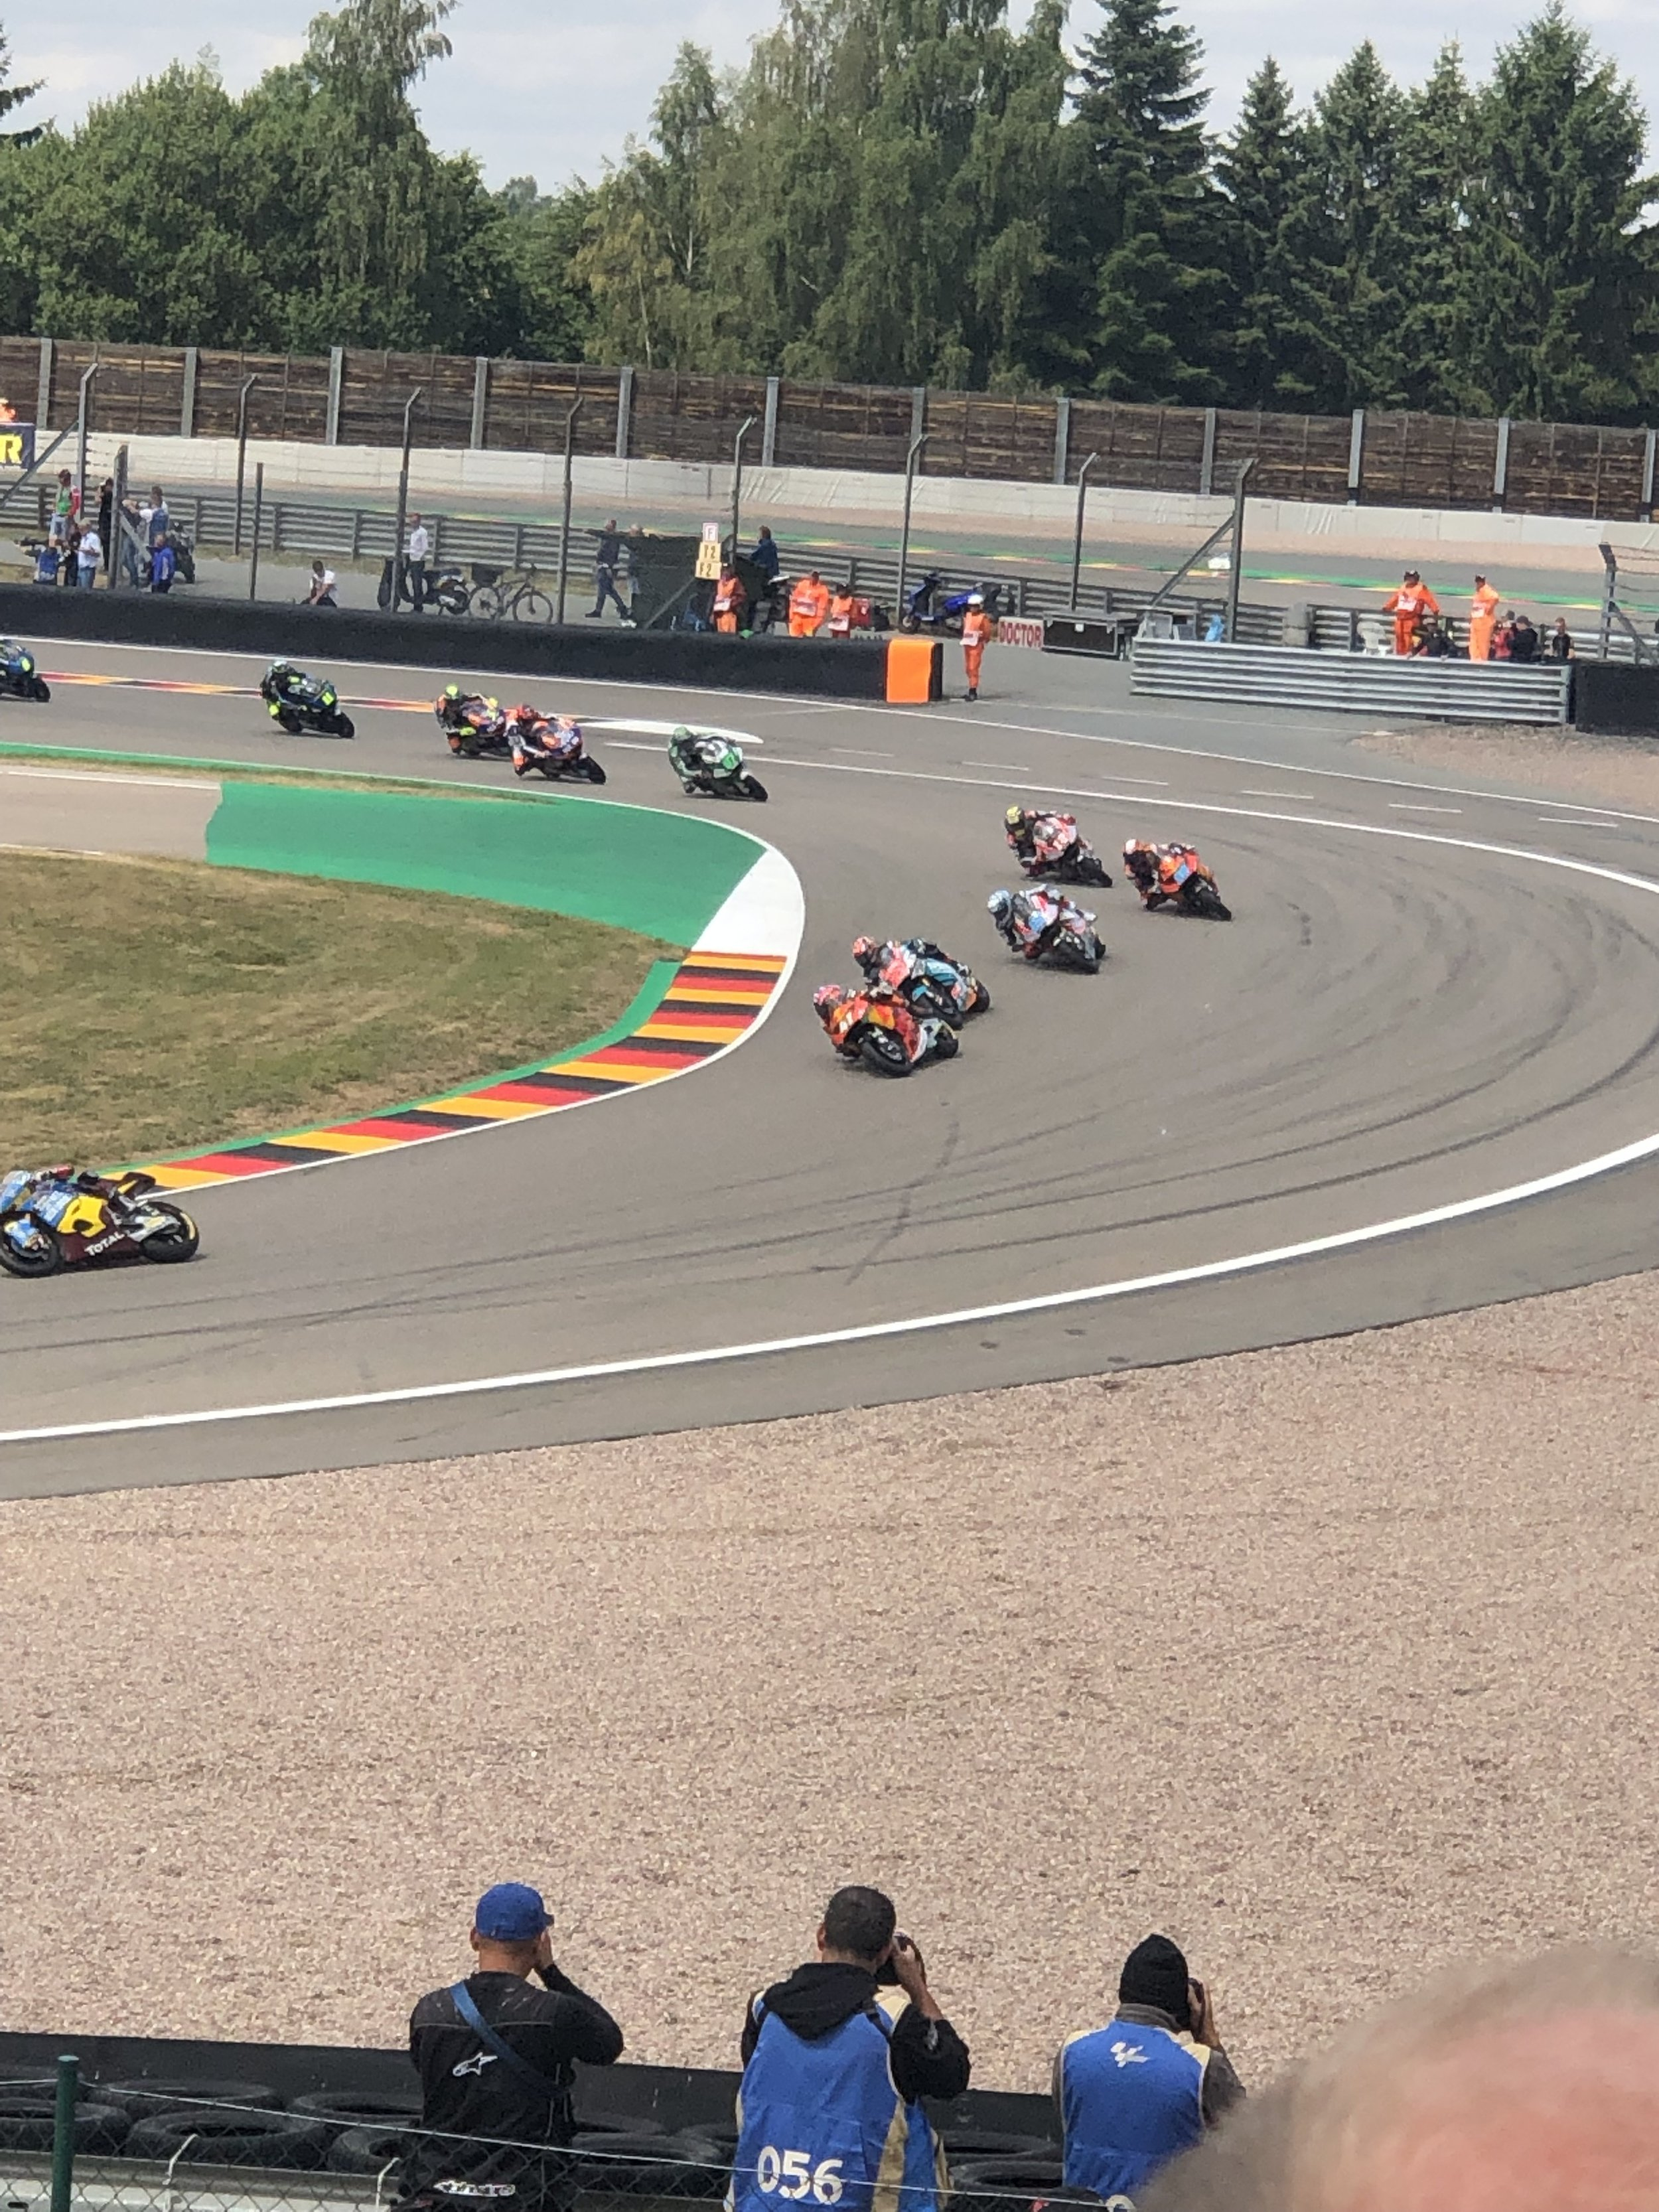 One of the things I most wanted to do while we were in Germany was to attend the MotoGP races held each year at the Sachsenring course near Chemnitz, Germany. This was my first MotoGP, and it even exciting than I thought it would be.